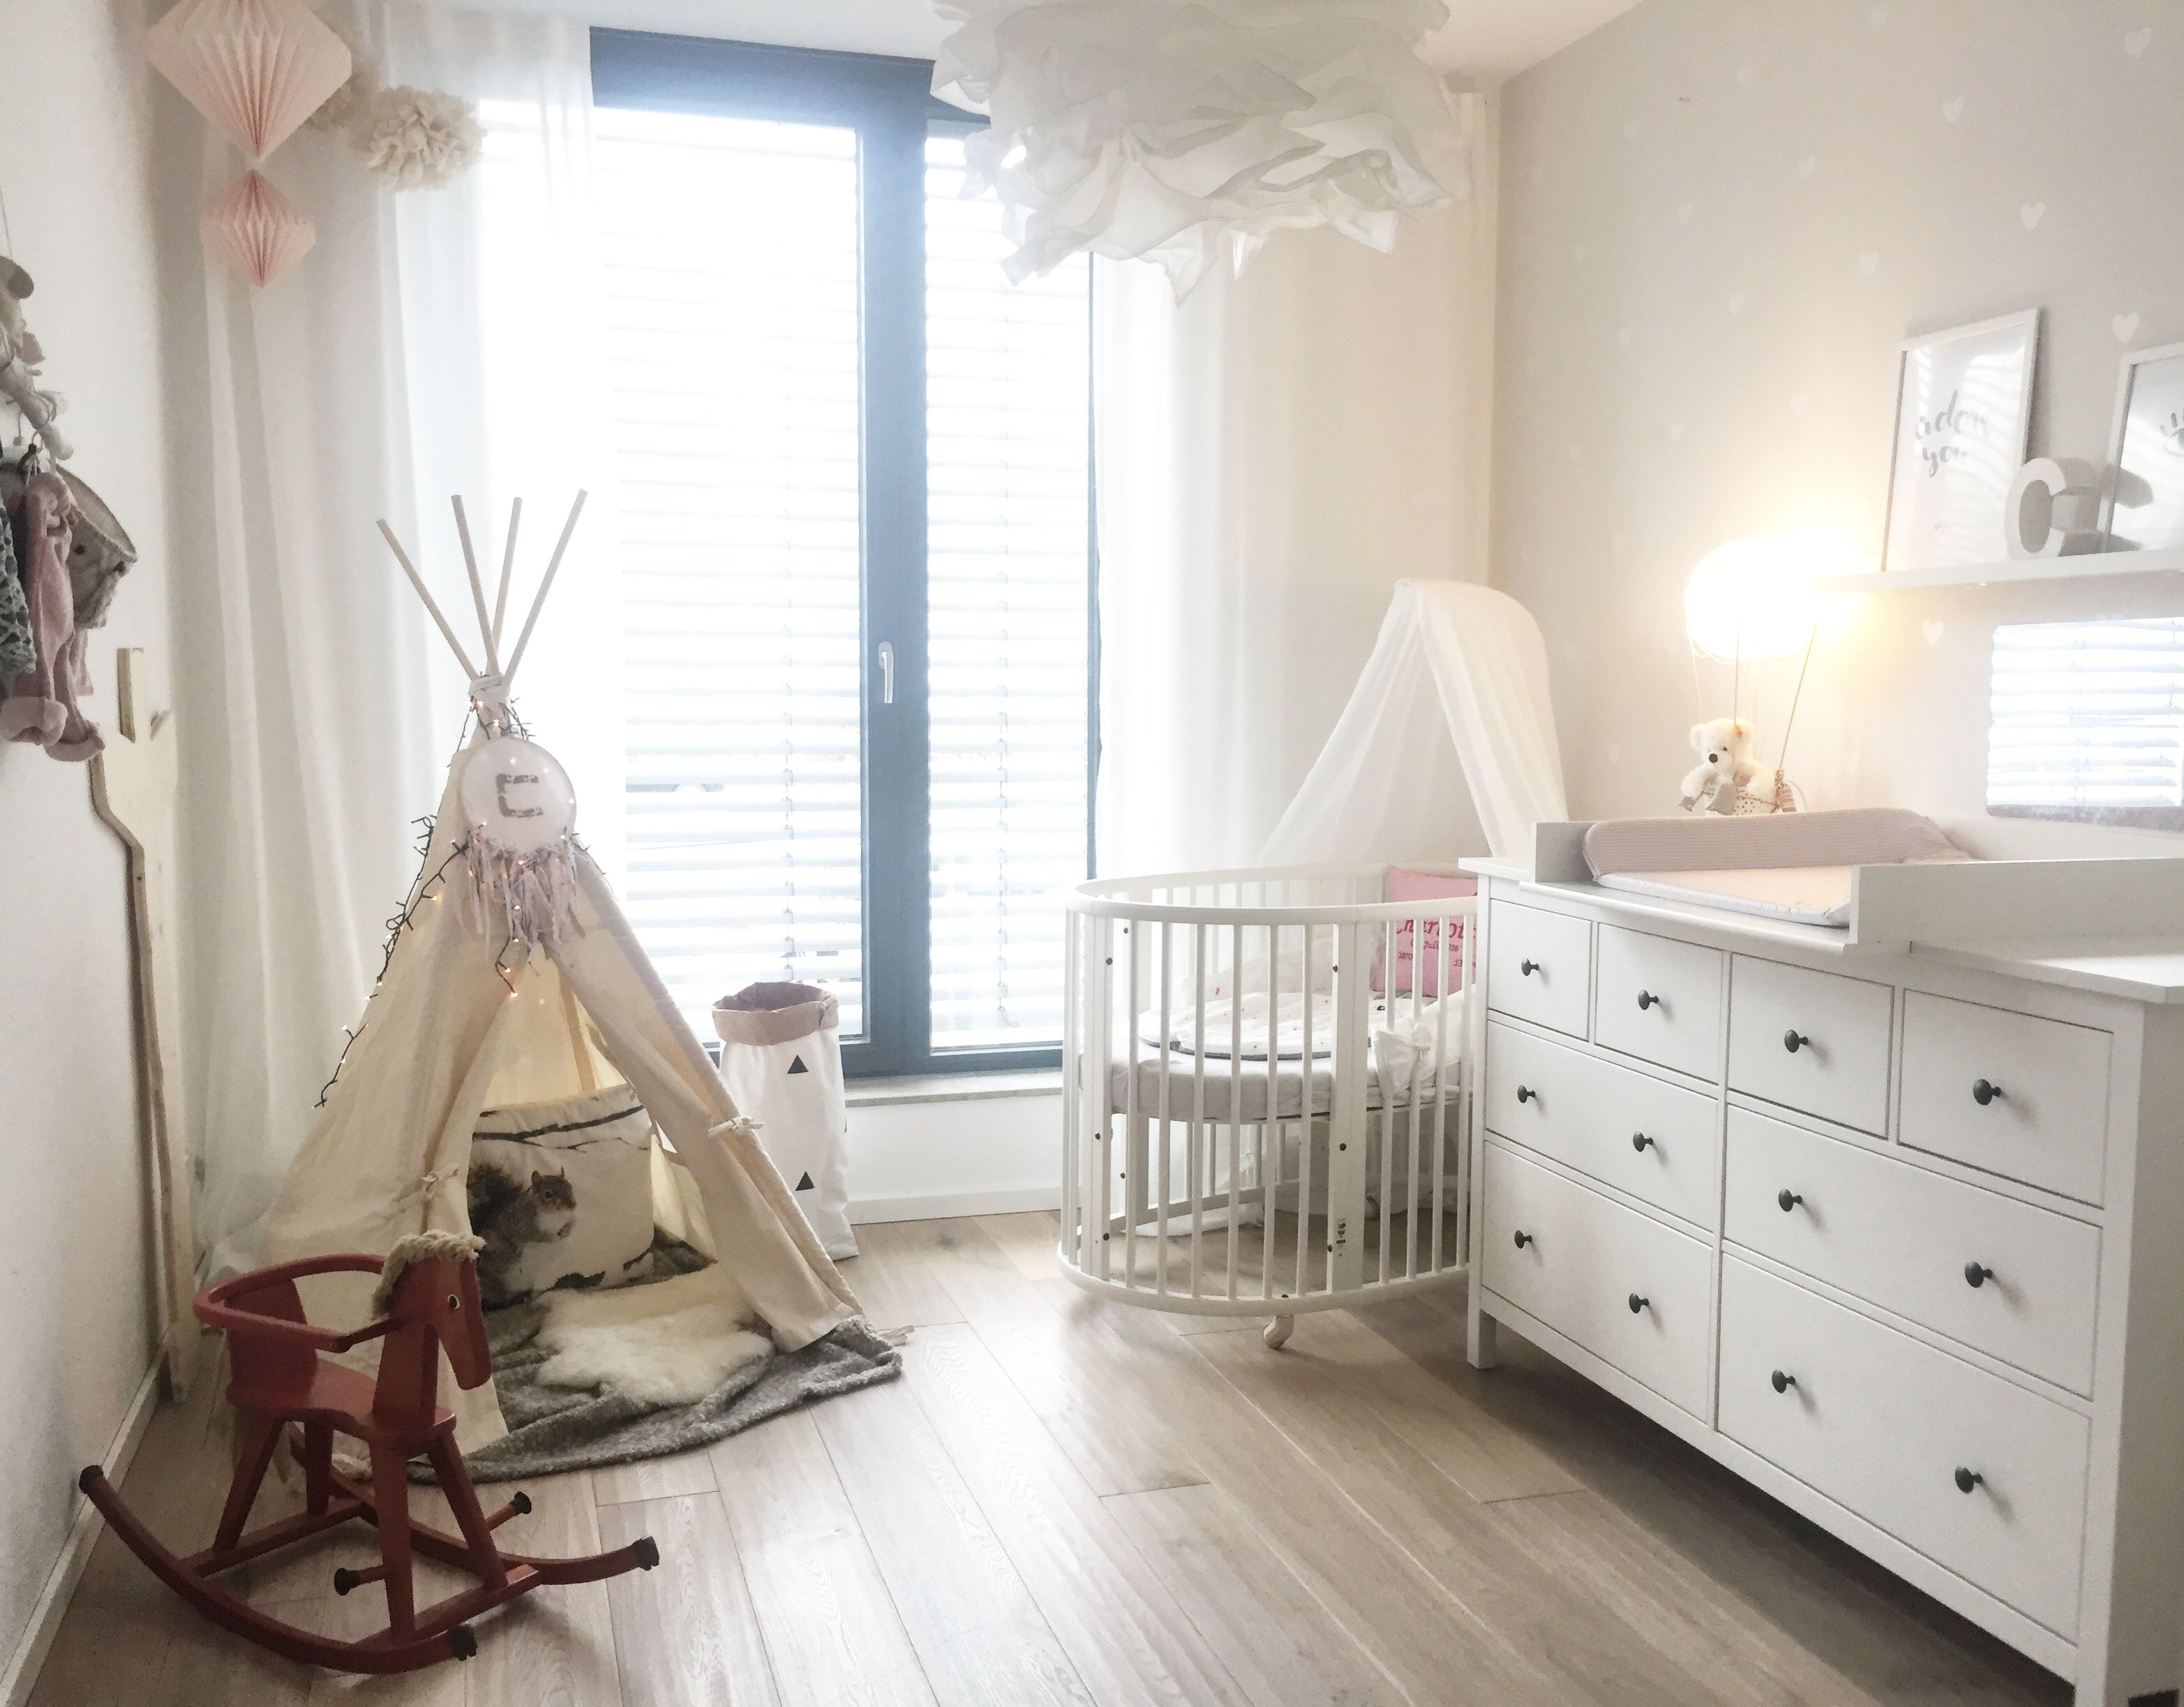 kinderzimmer babyzimmer tipi indianer ikea hemnes wickelkommode stokke ikea baby nursery. Black Bedroom Furniture Sets. Home Design Ideas